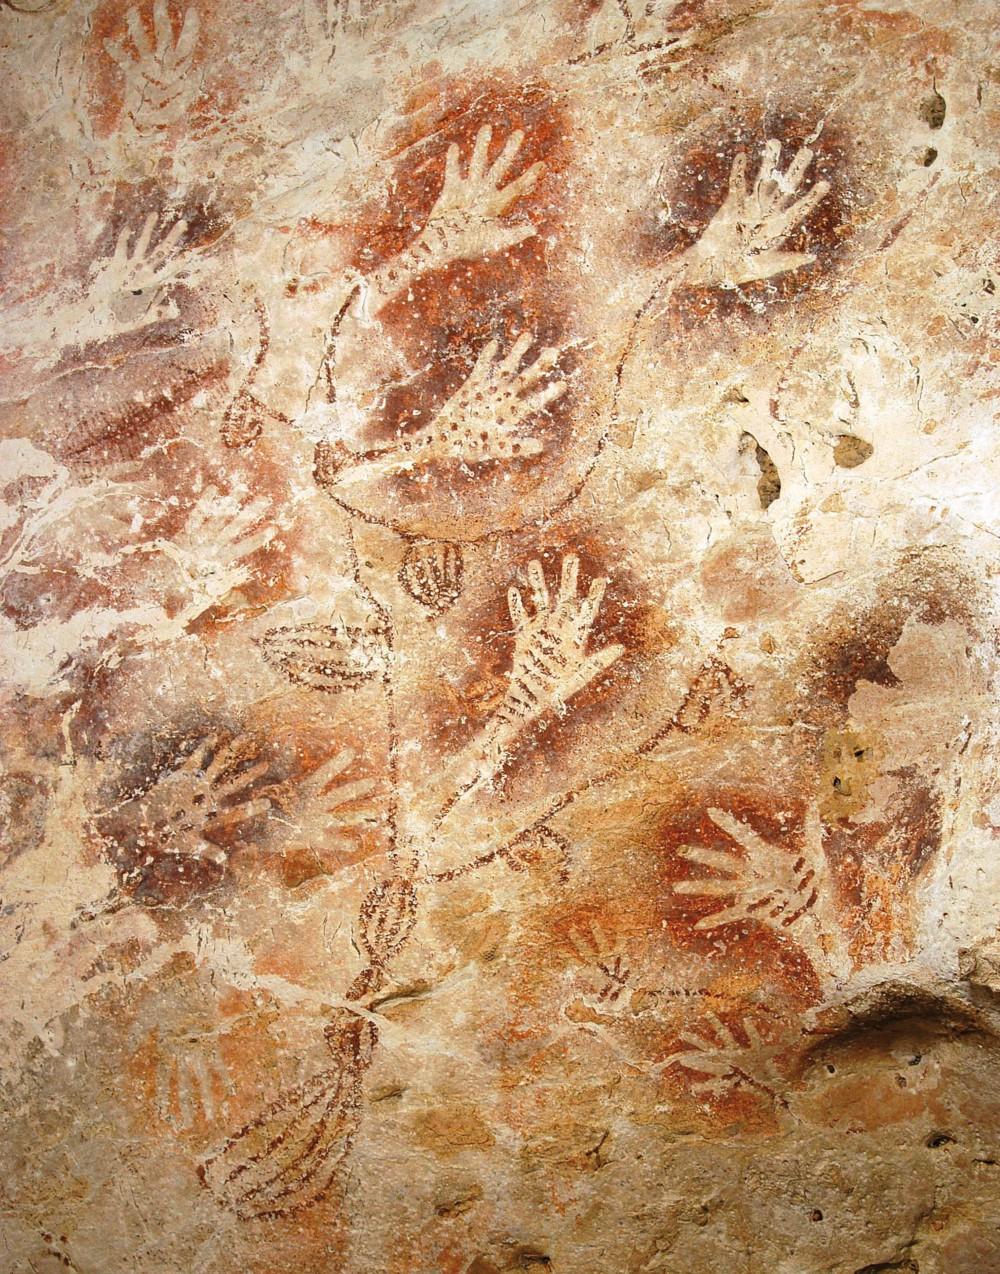 Cave painting in Borneo, Indonesia